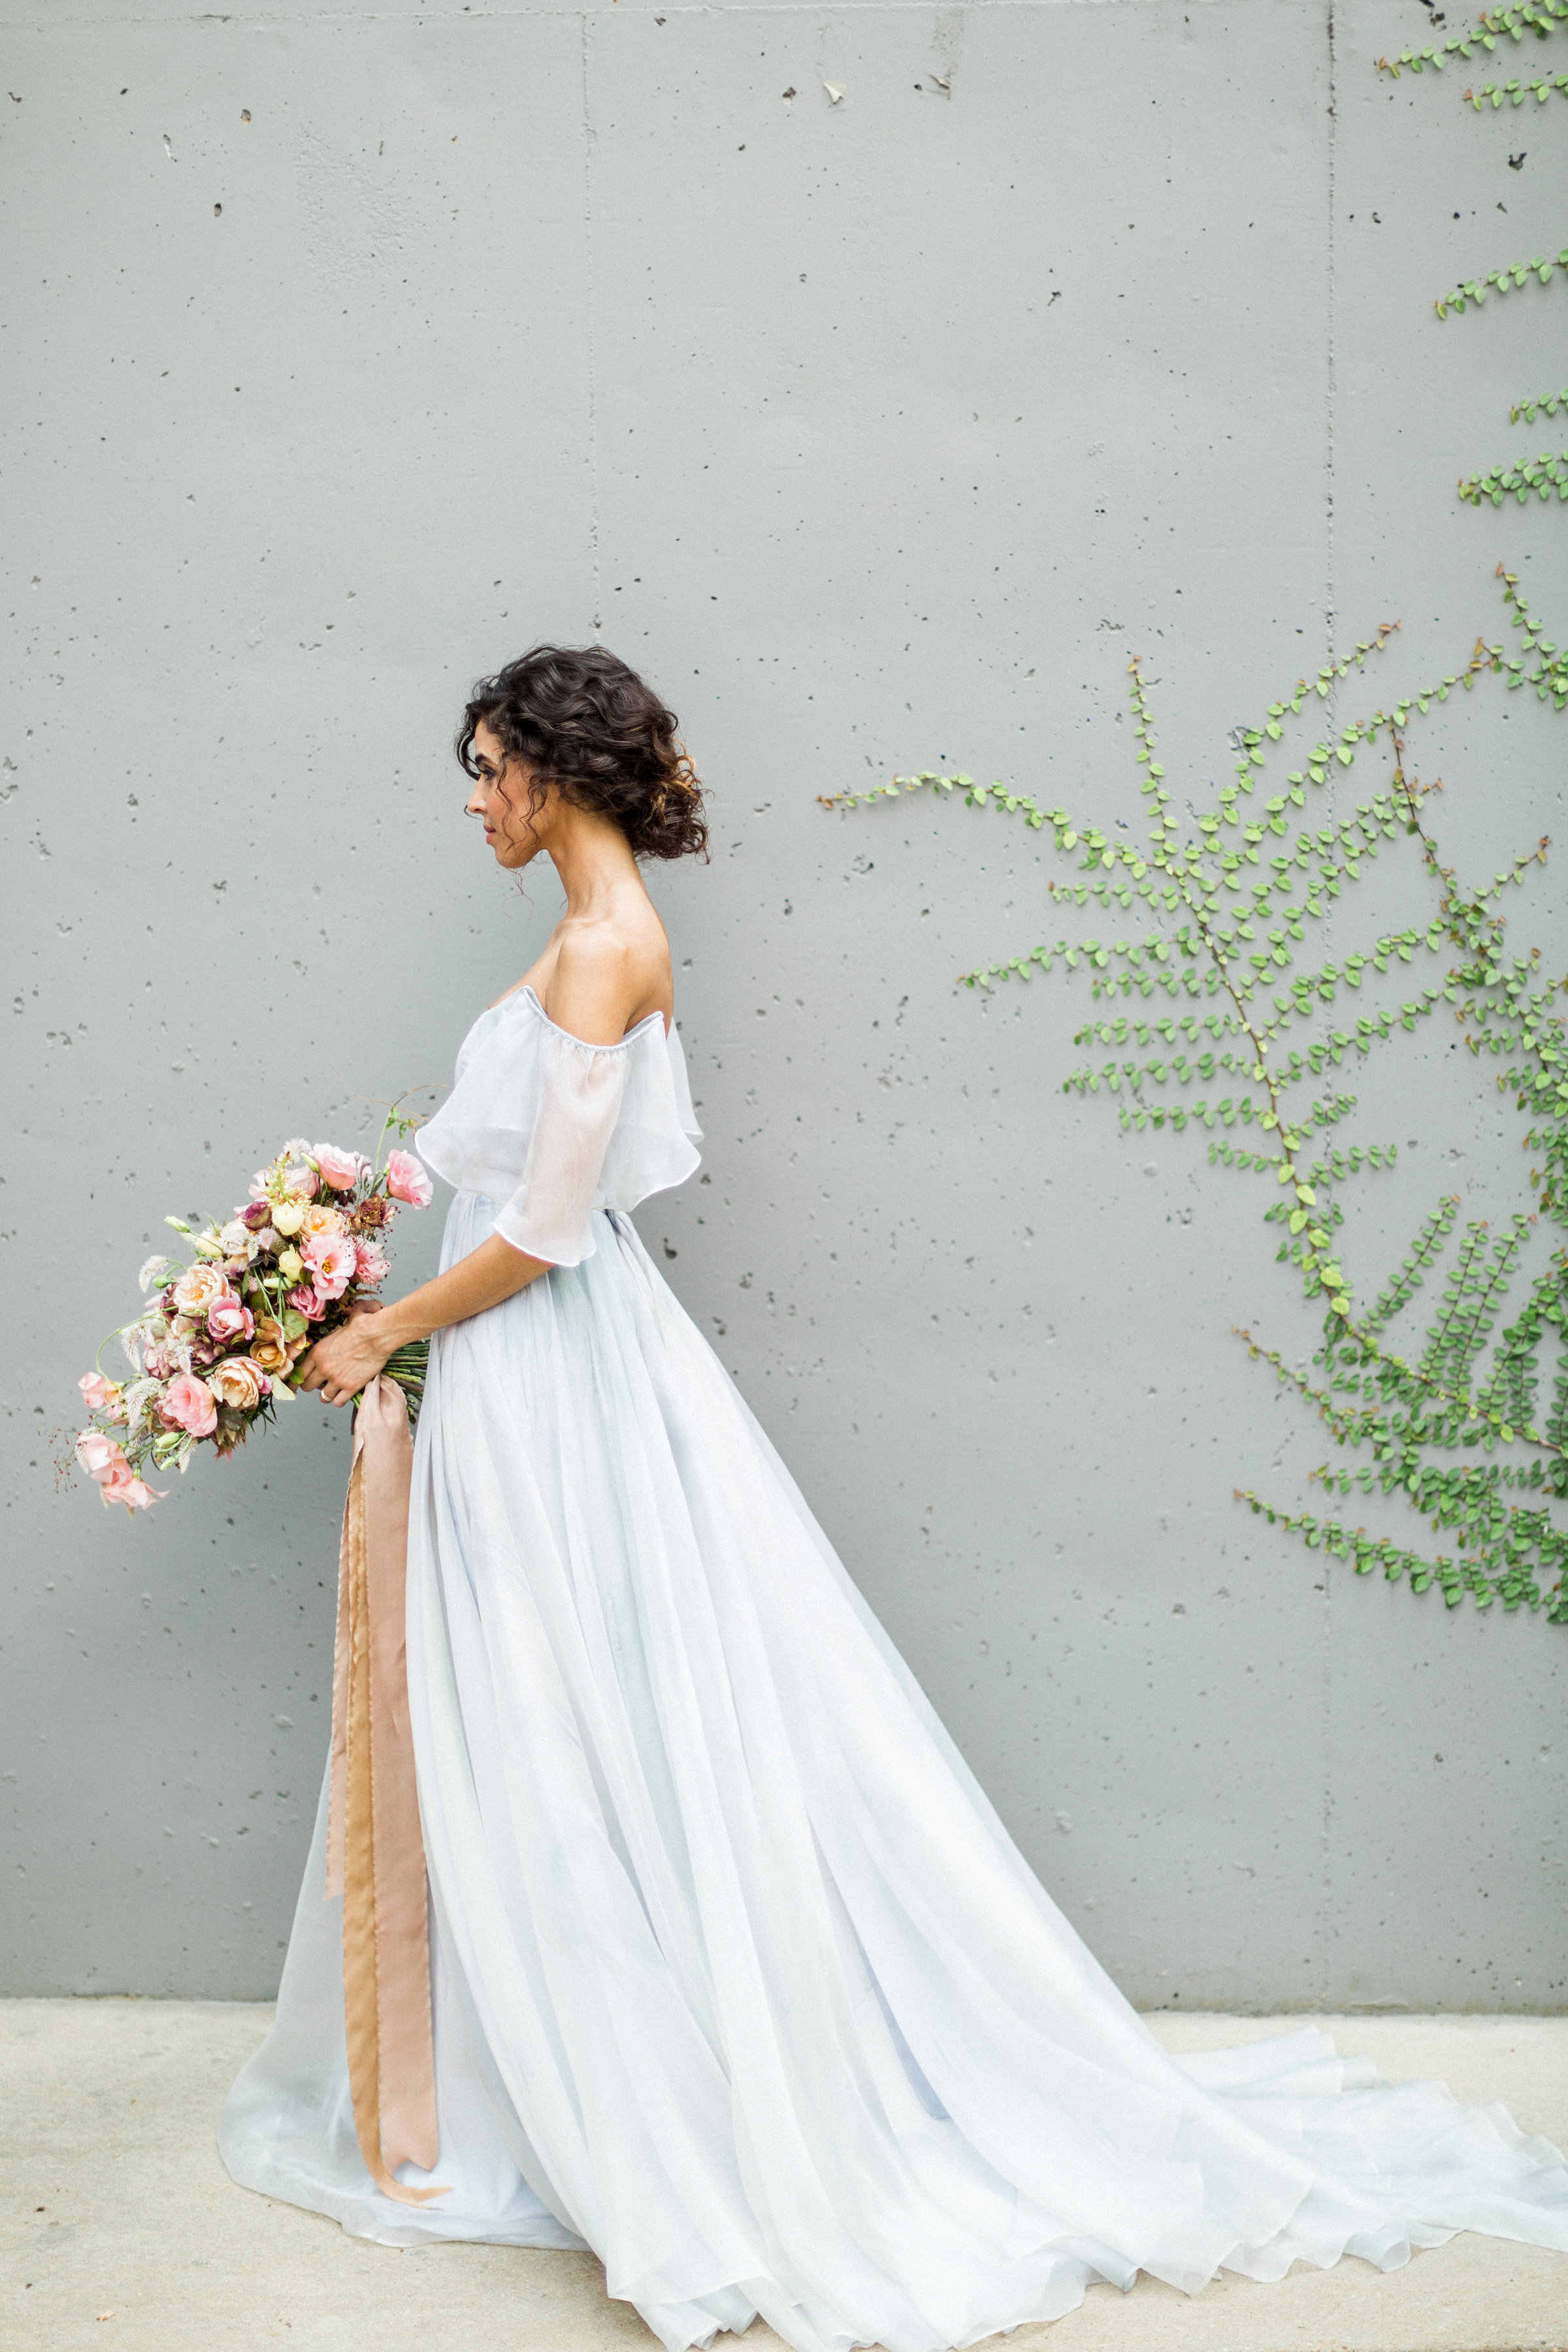 Rustic White Photography